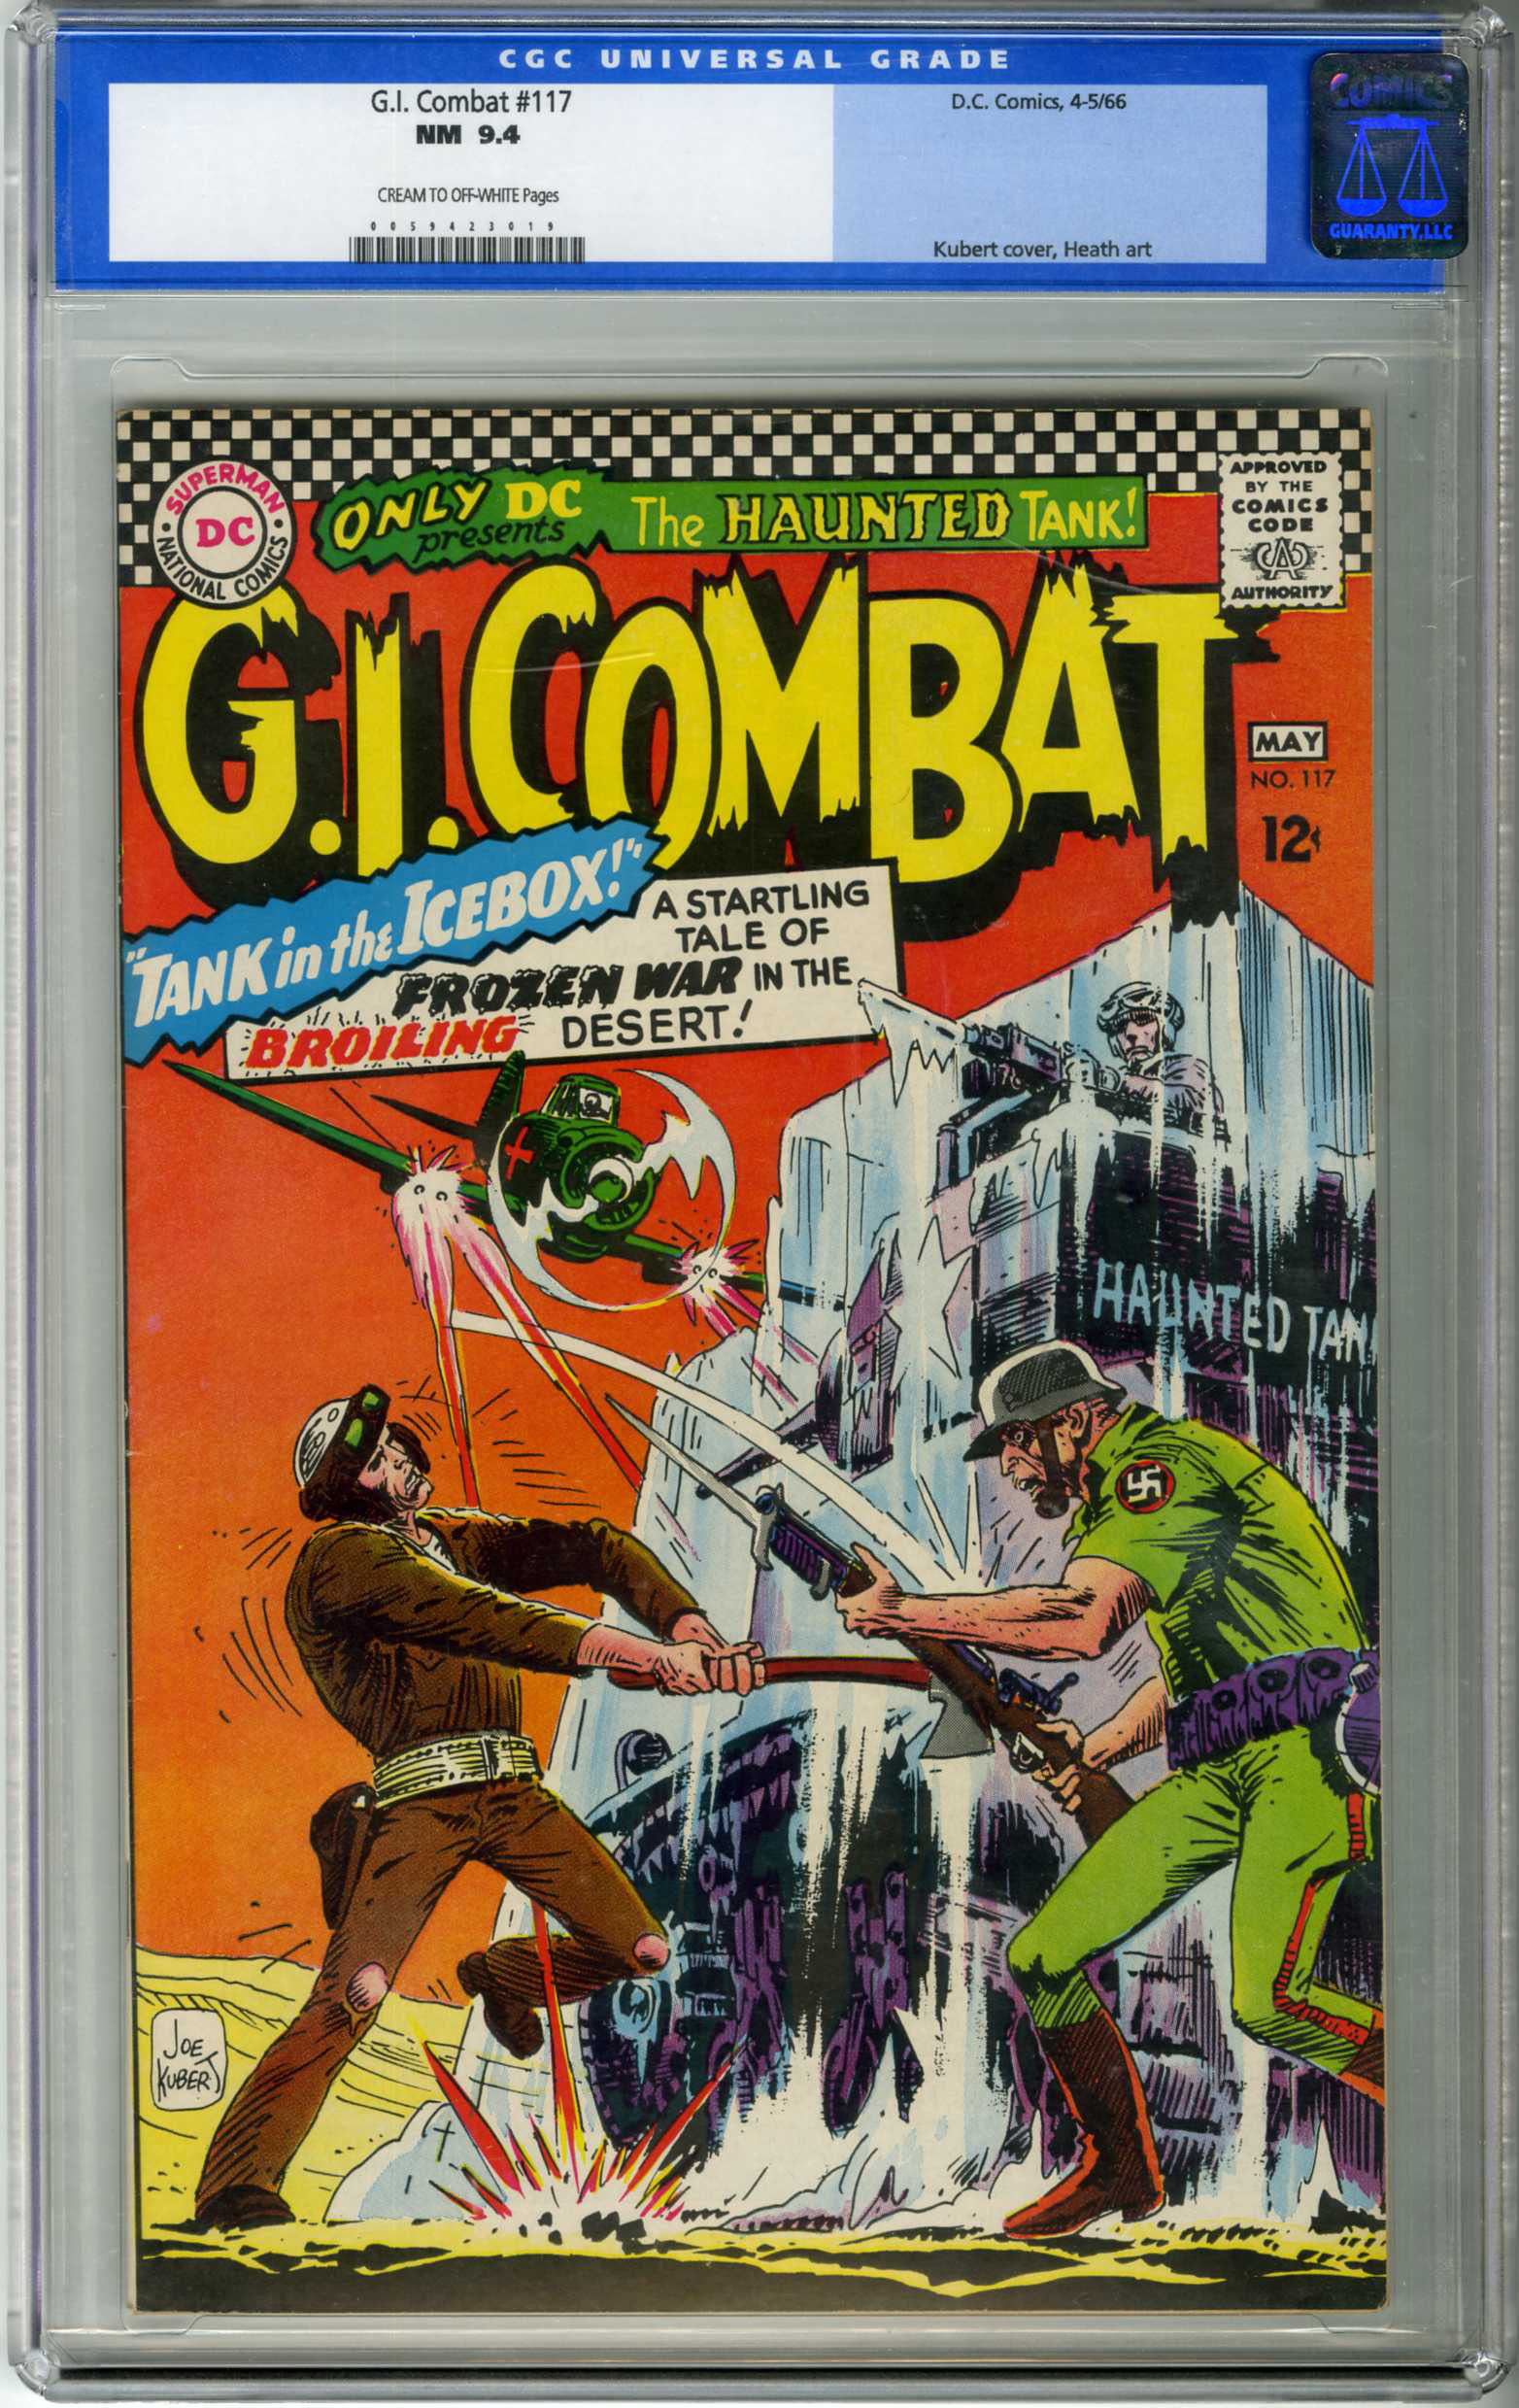 G.I. COMBAT #117 (1966) CGC NM 9.4 COW Pages KUBERT COVER / RUSS HEATH ART